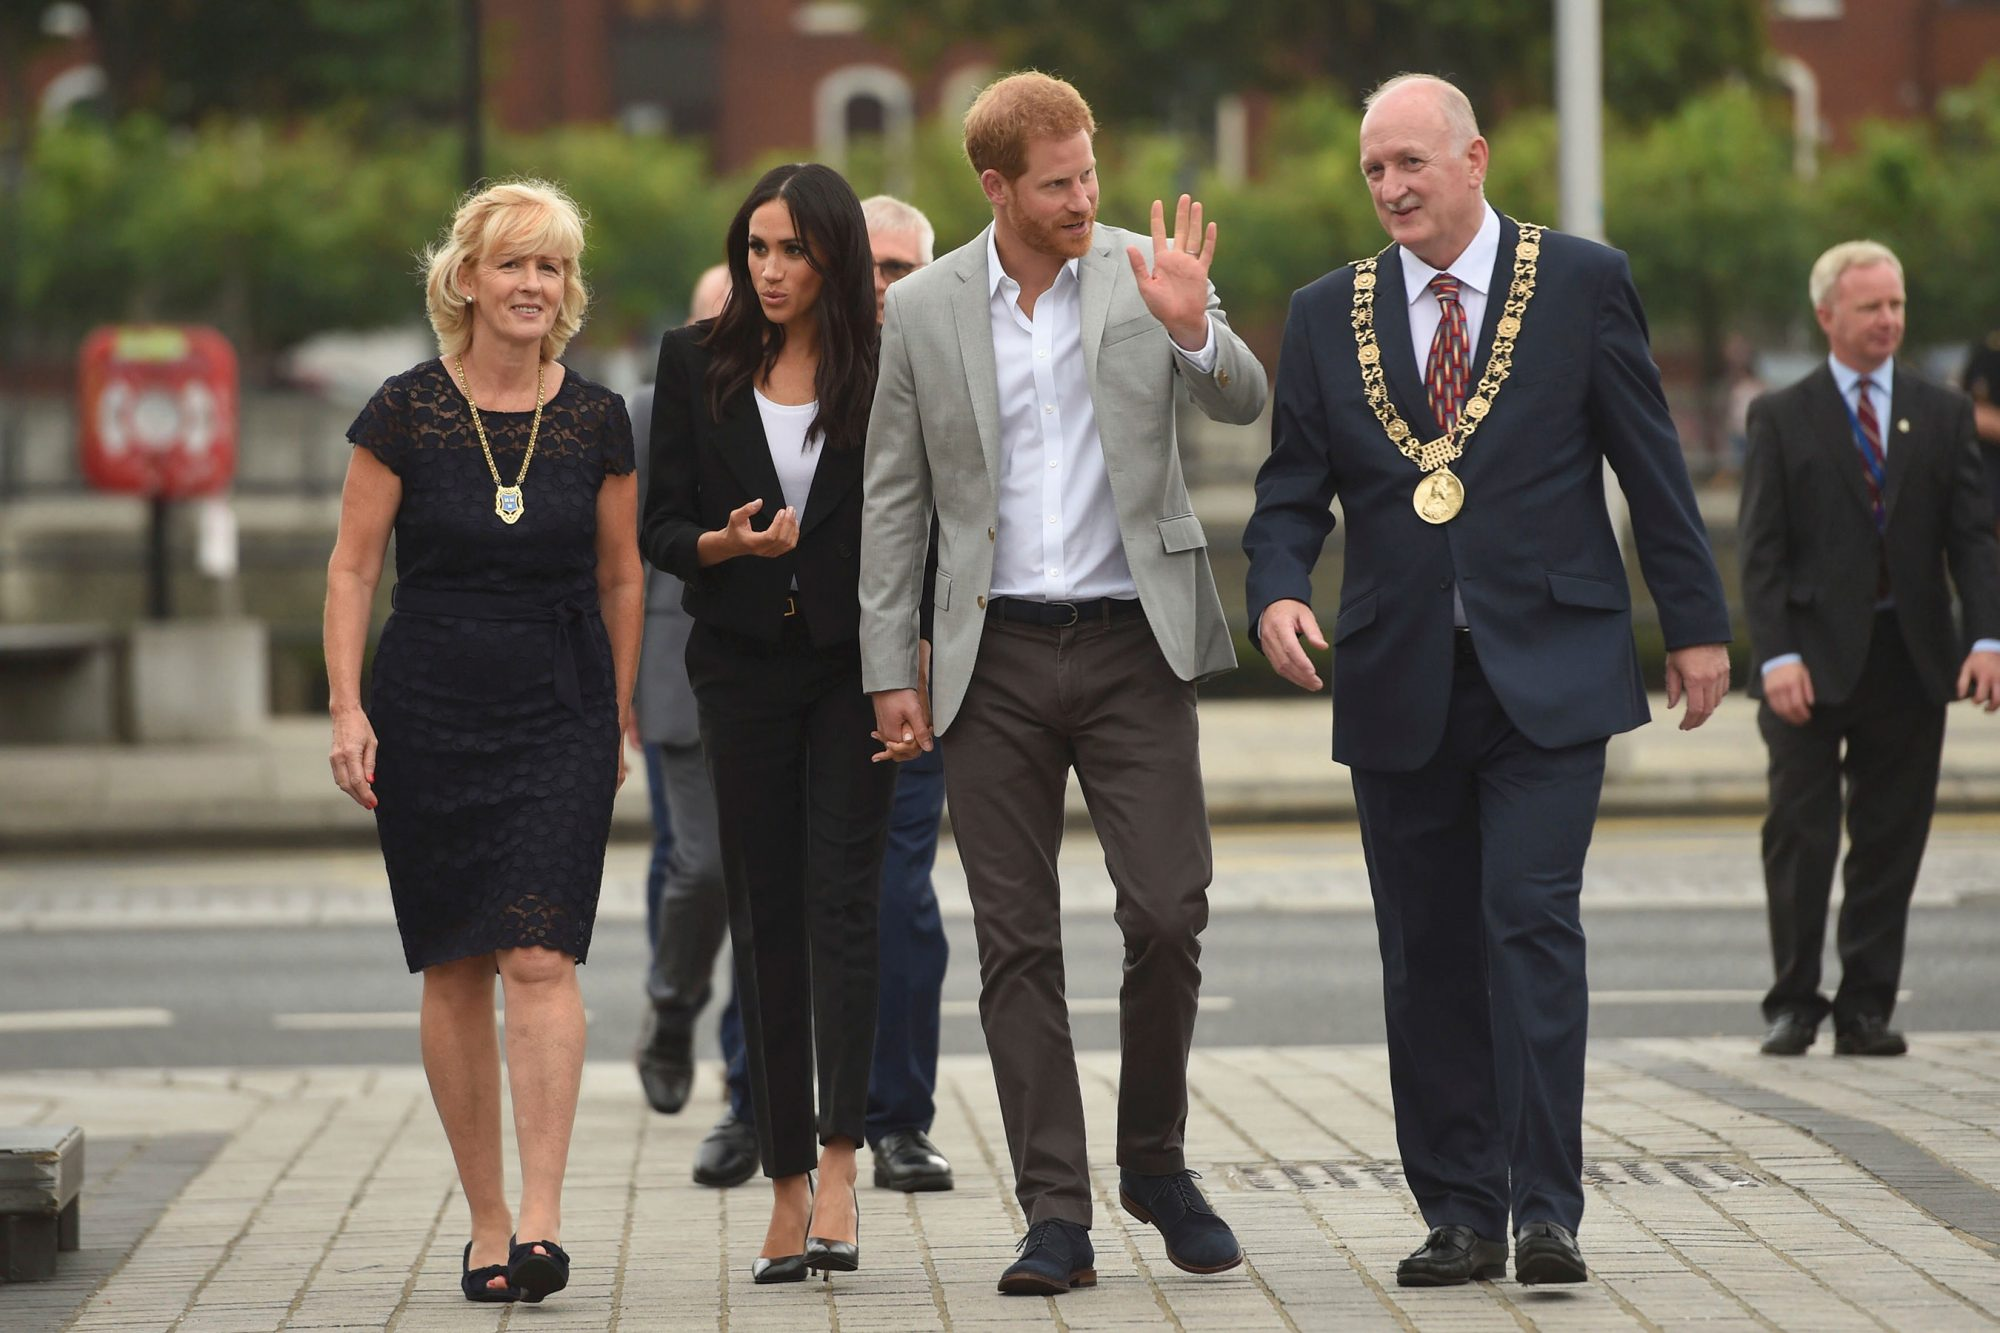 Royal visit to Dublin - Day Two